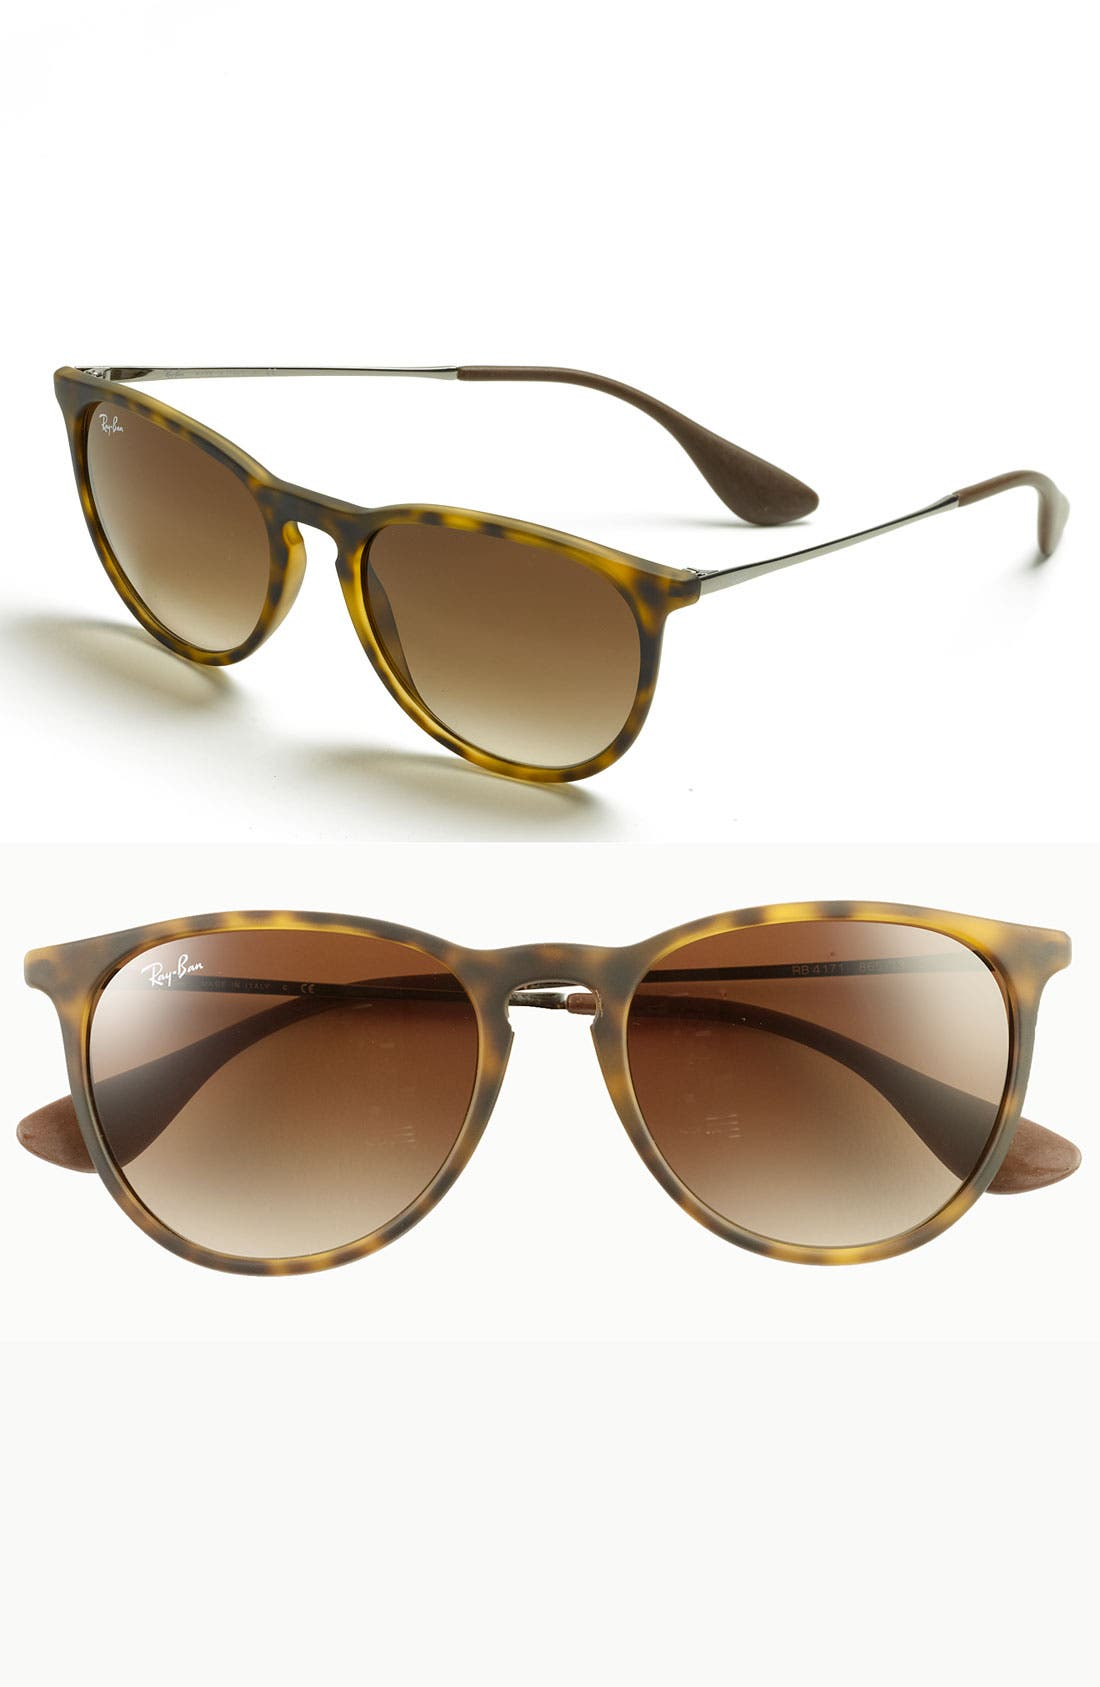 original sunglasses  Ray-Ban Erika Classic 54mm Sunglasses